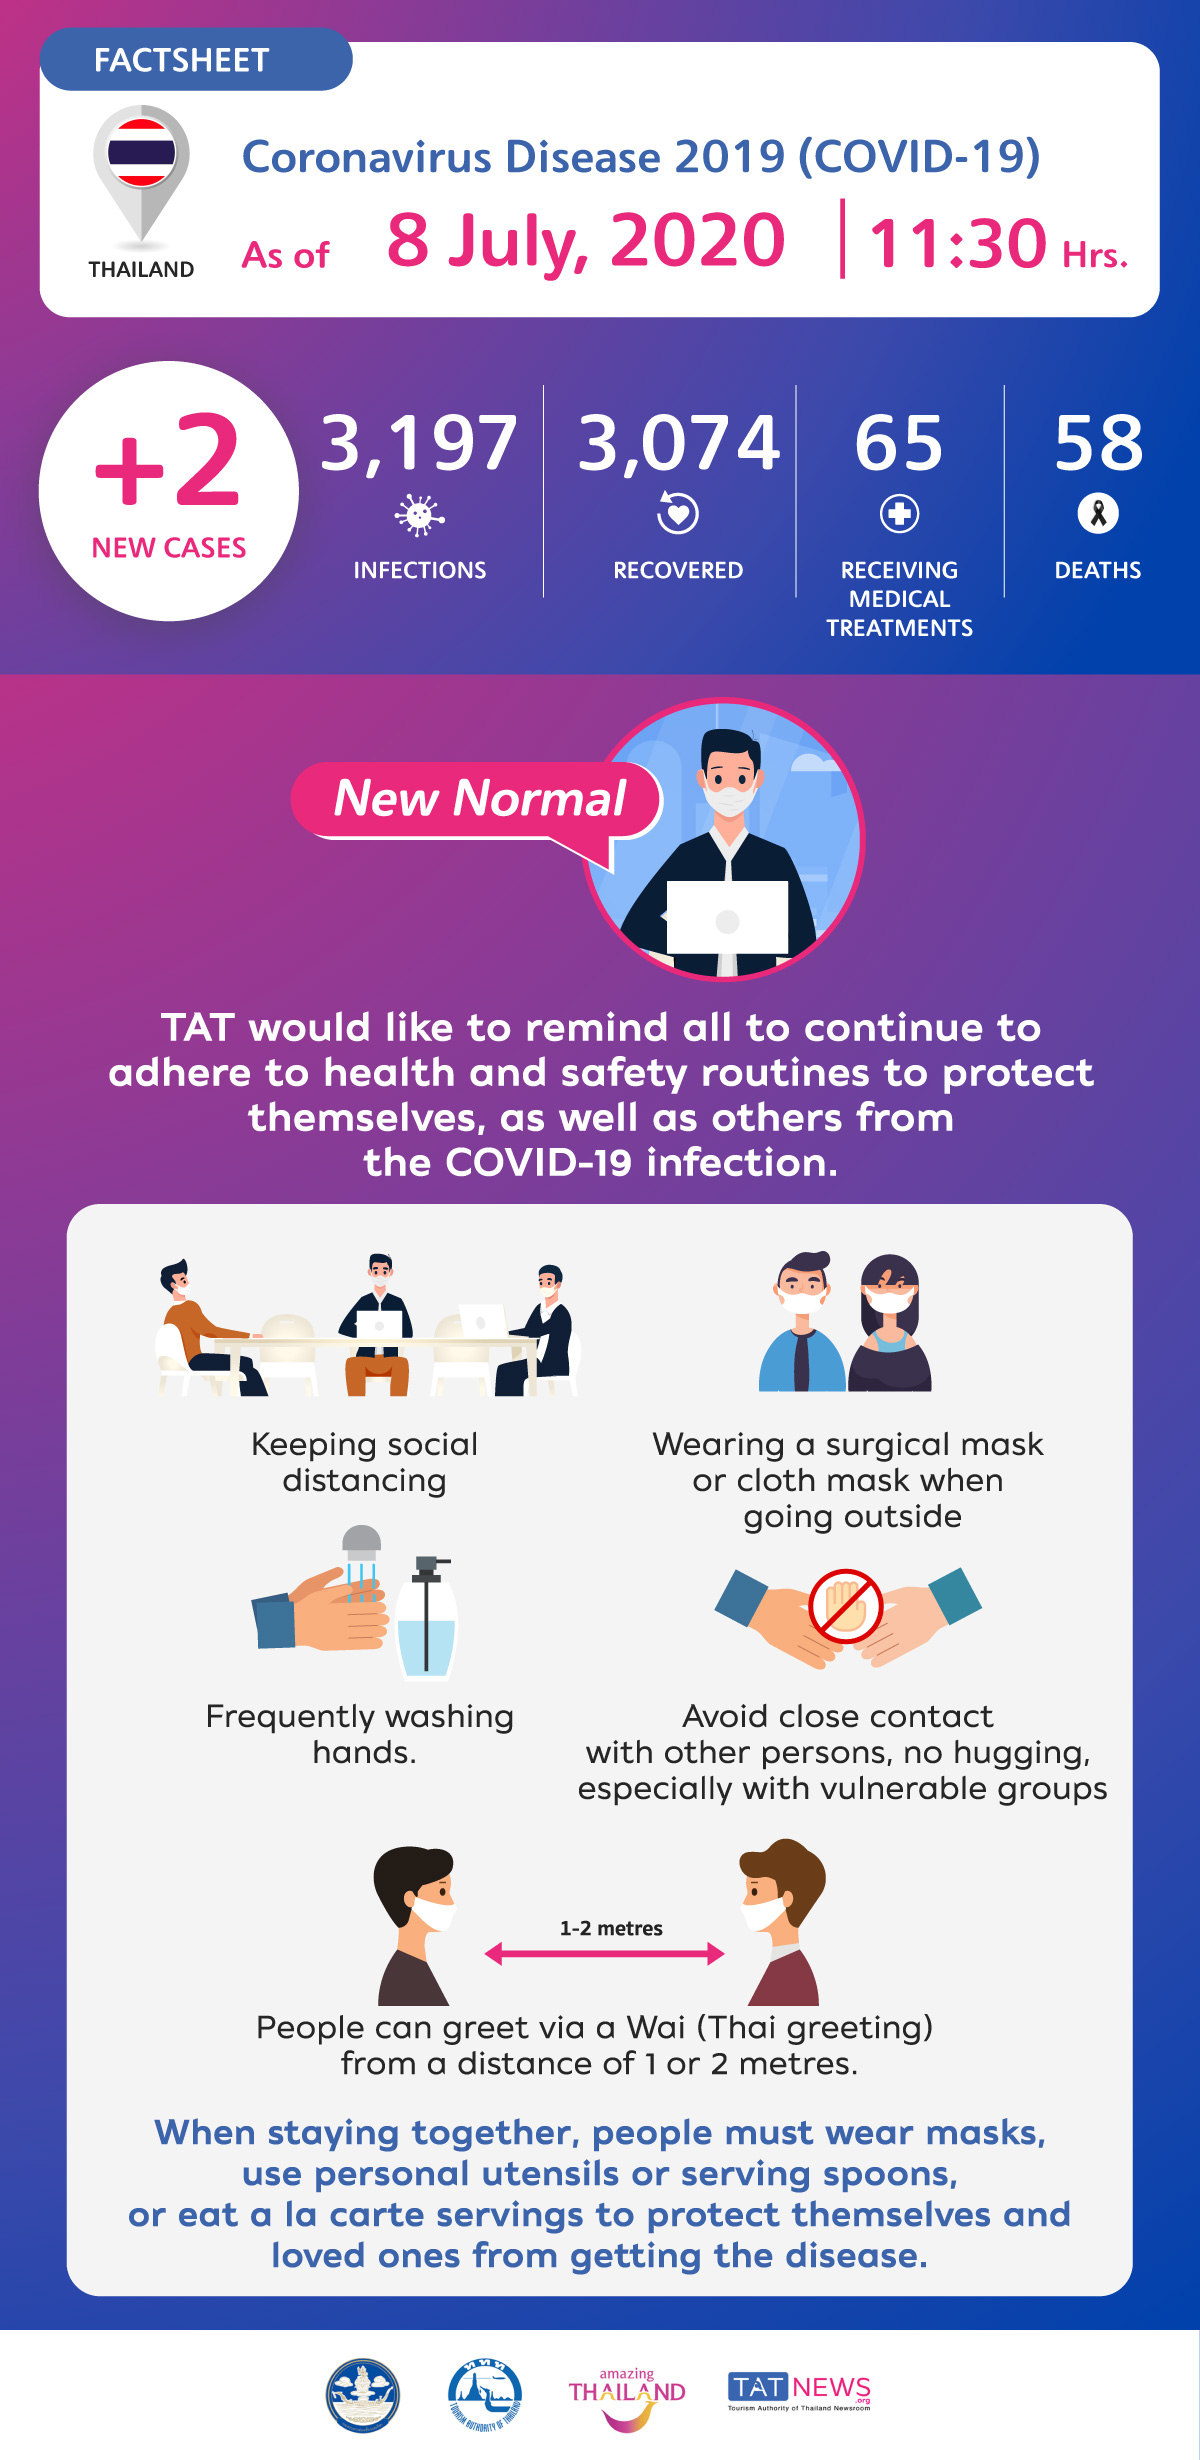 Coronavirus Disease 2019 (COVID-19) situation in Thailand as of 8 July 2020, 11.30 Hrs.